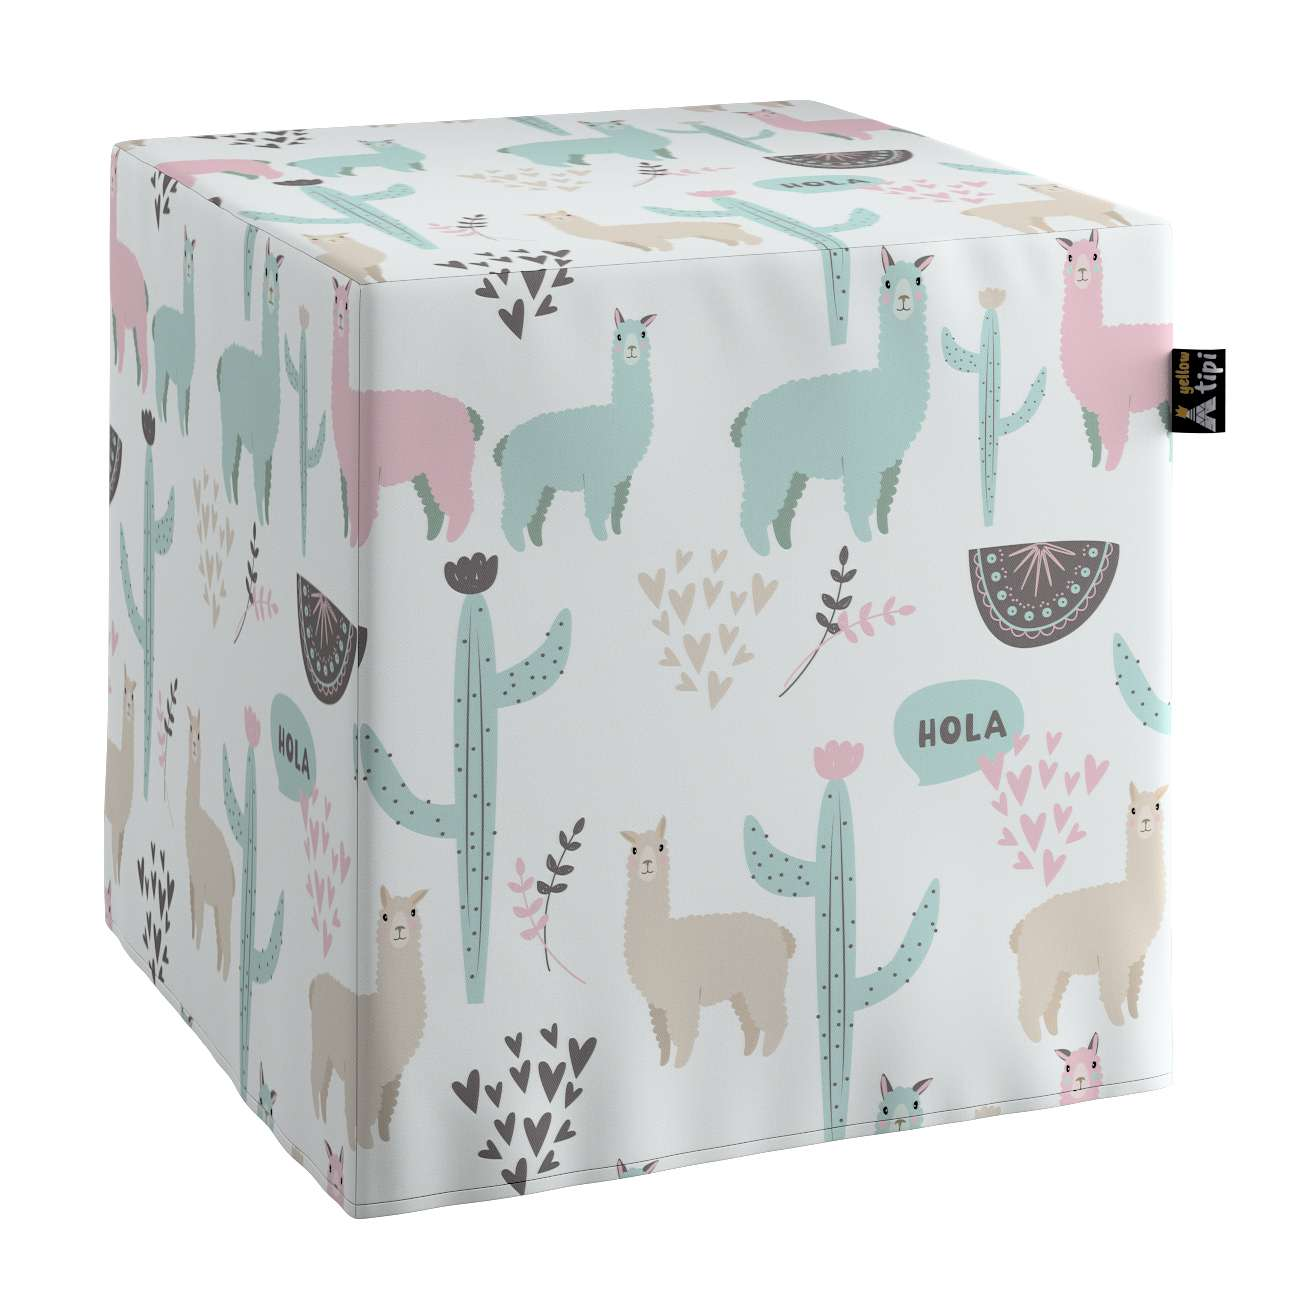 Nano cube pouf in collection Magic Collection, fabric: 500-01